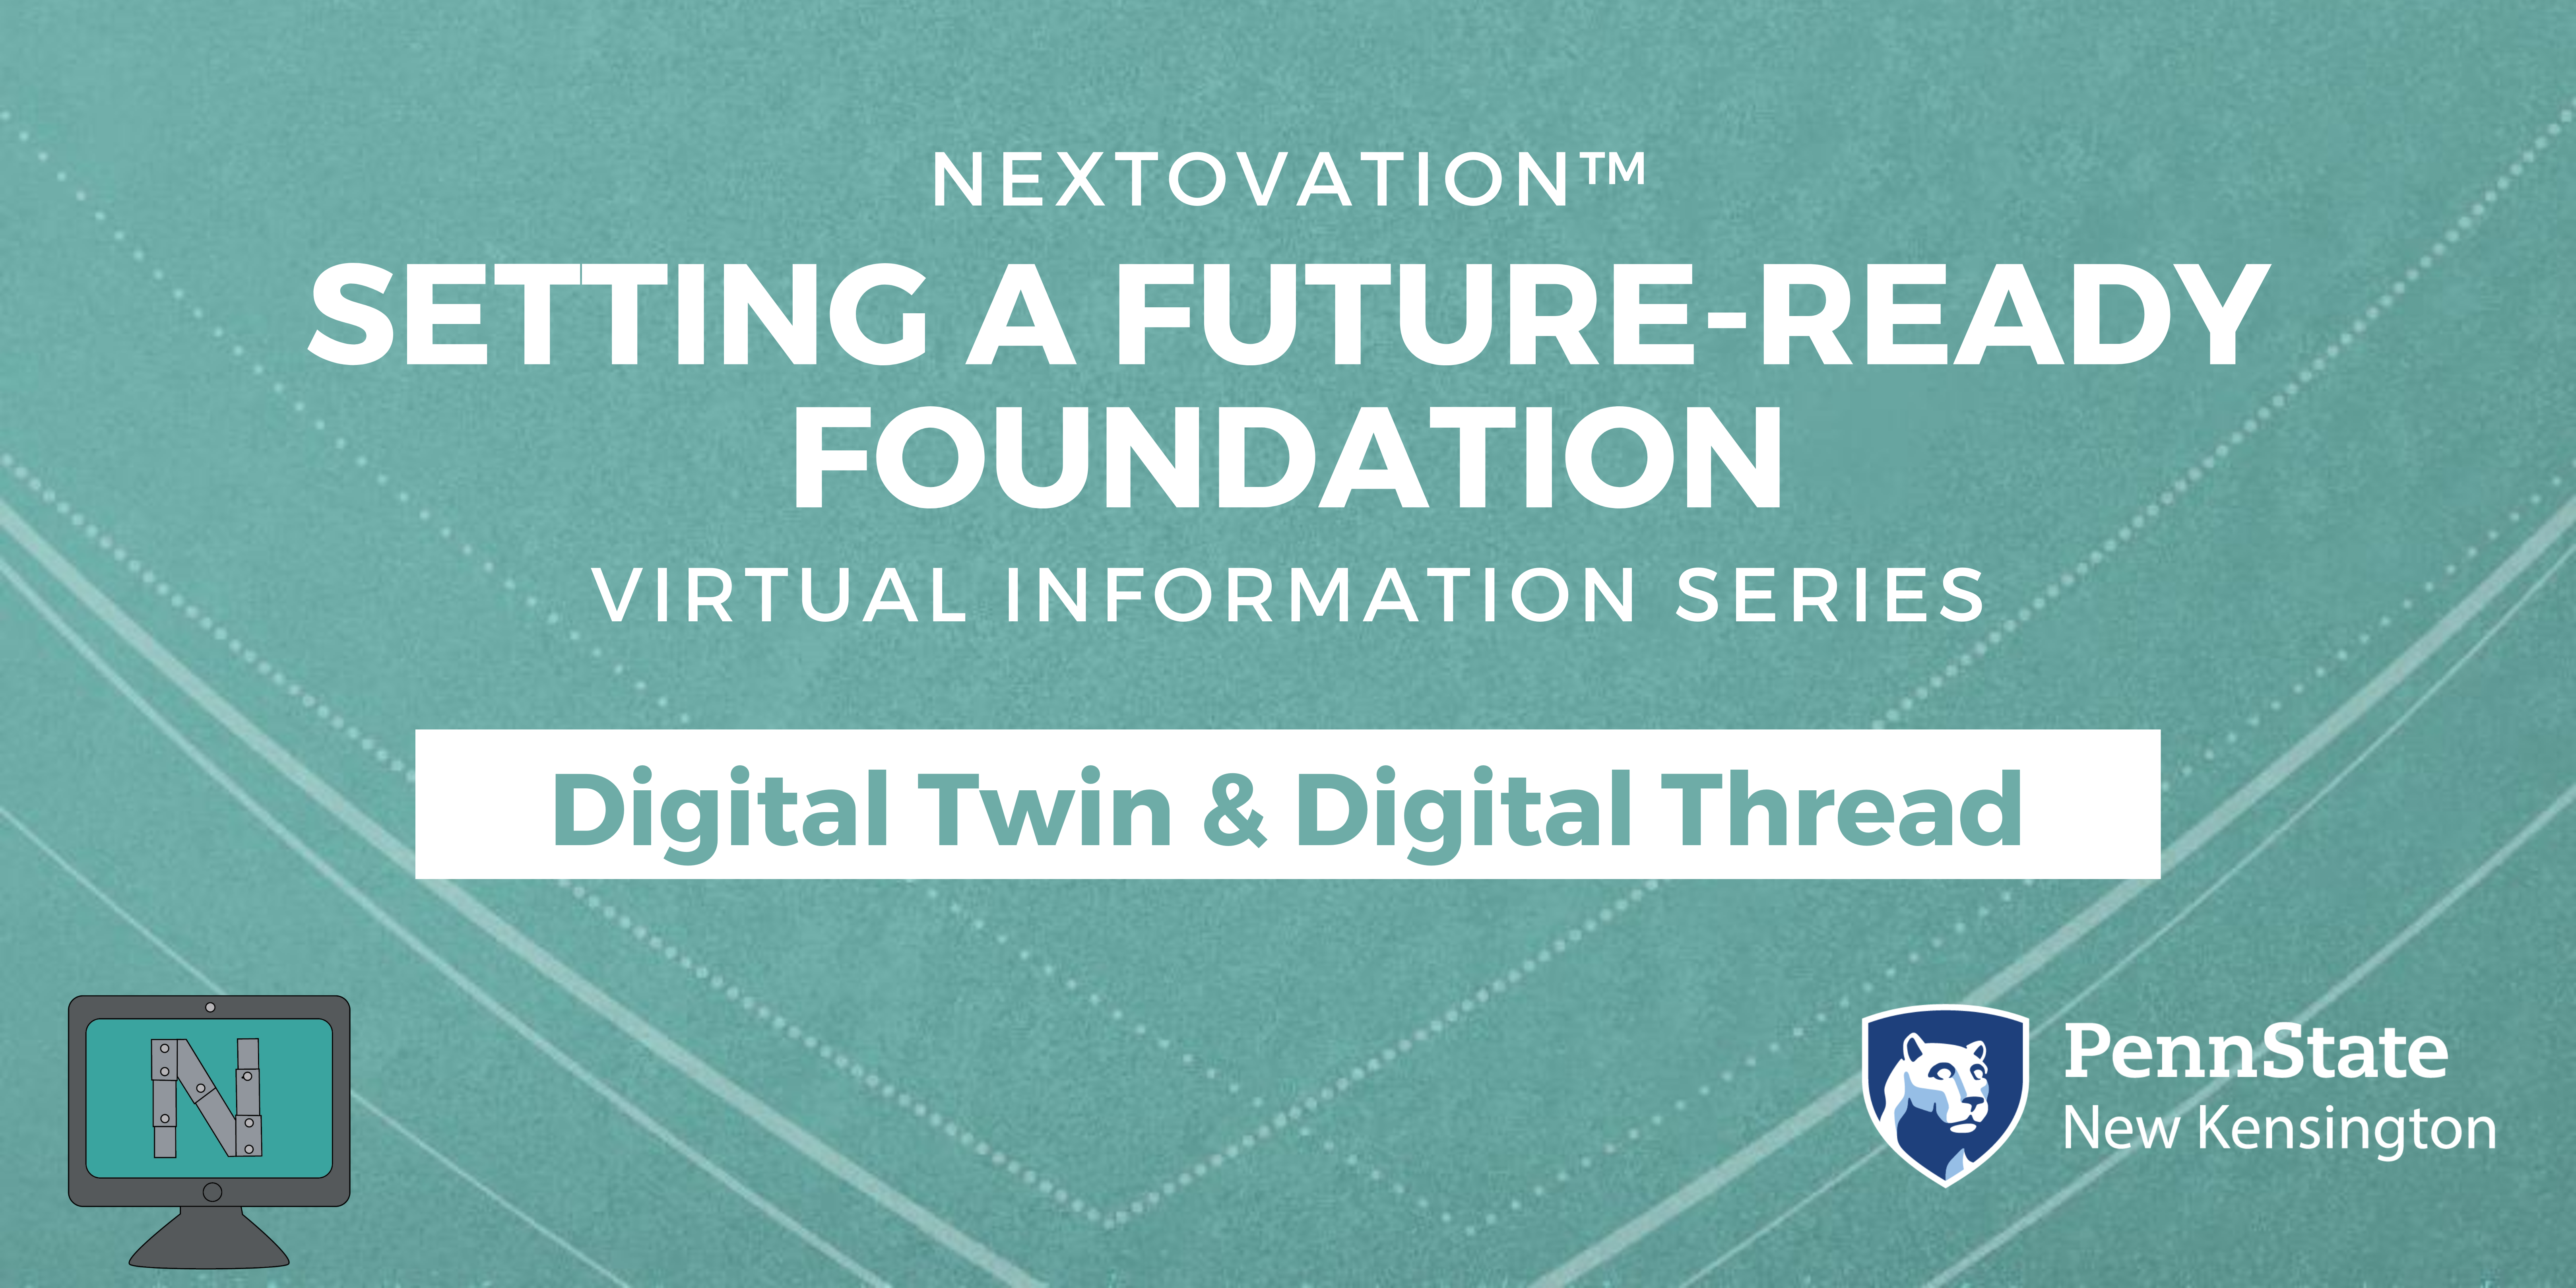 Webinar Title: Digital Twin and Digital Thread